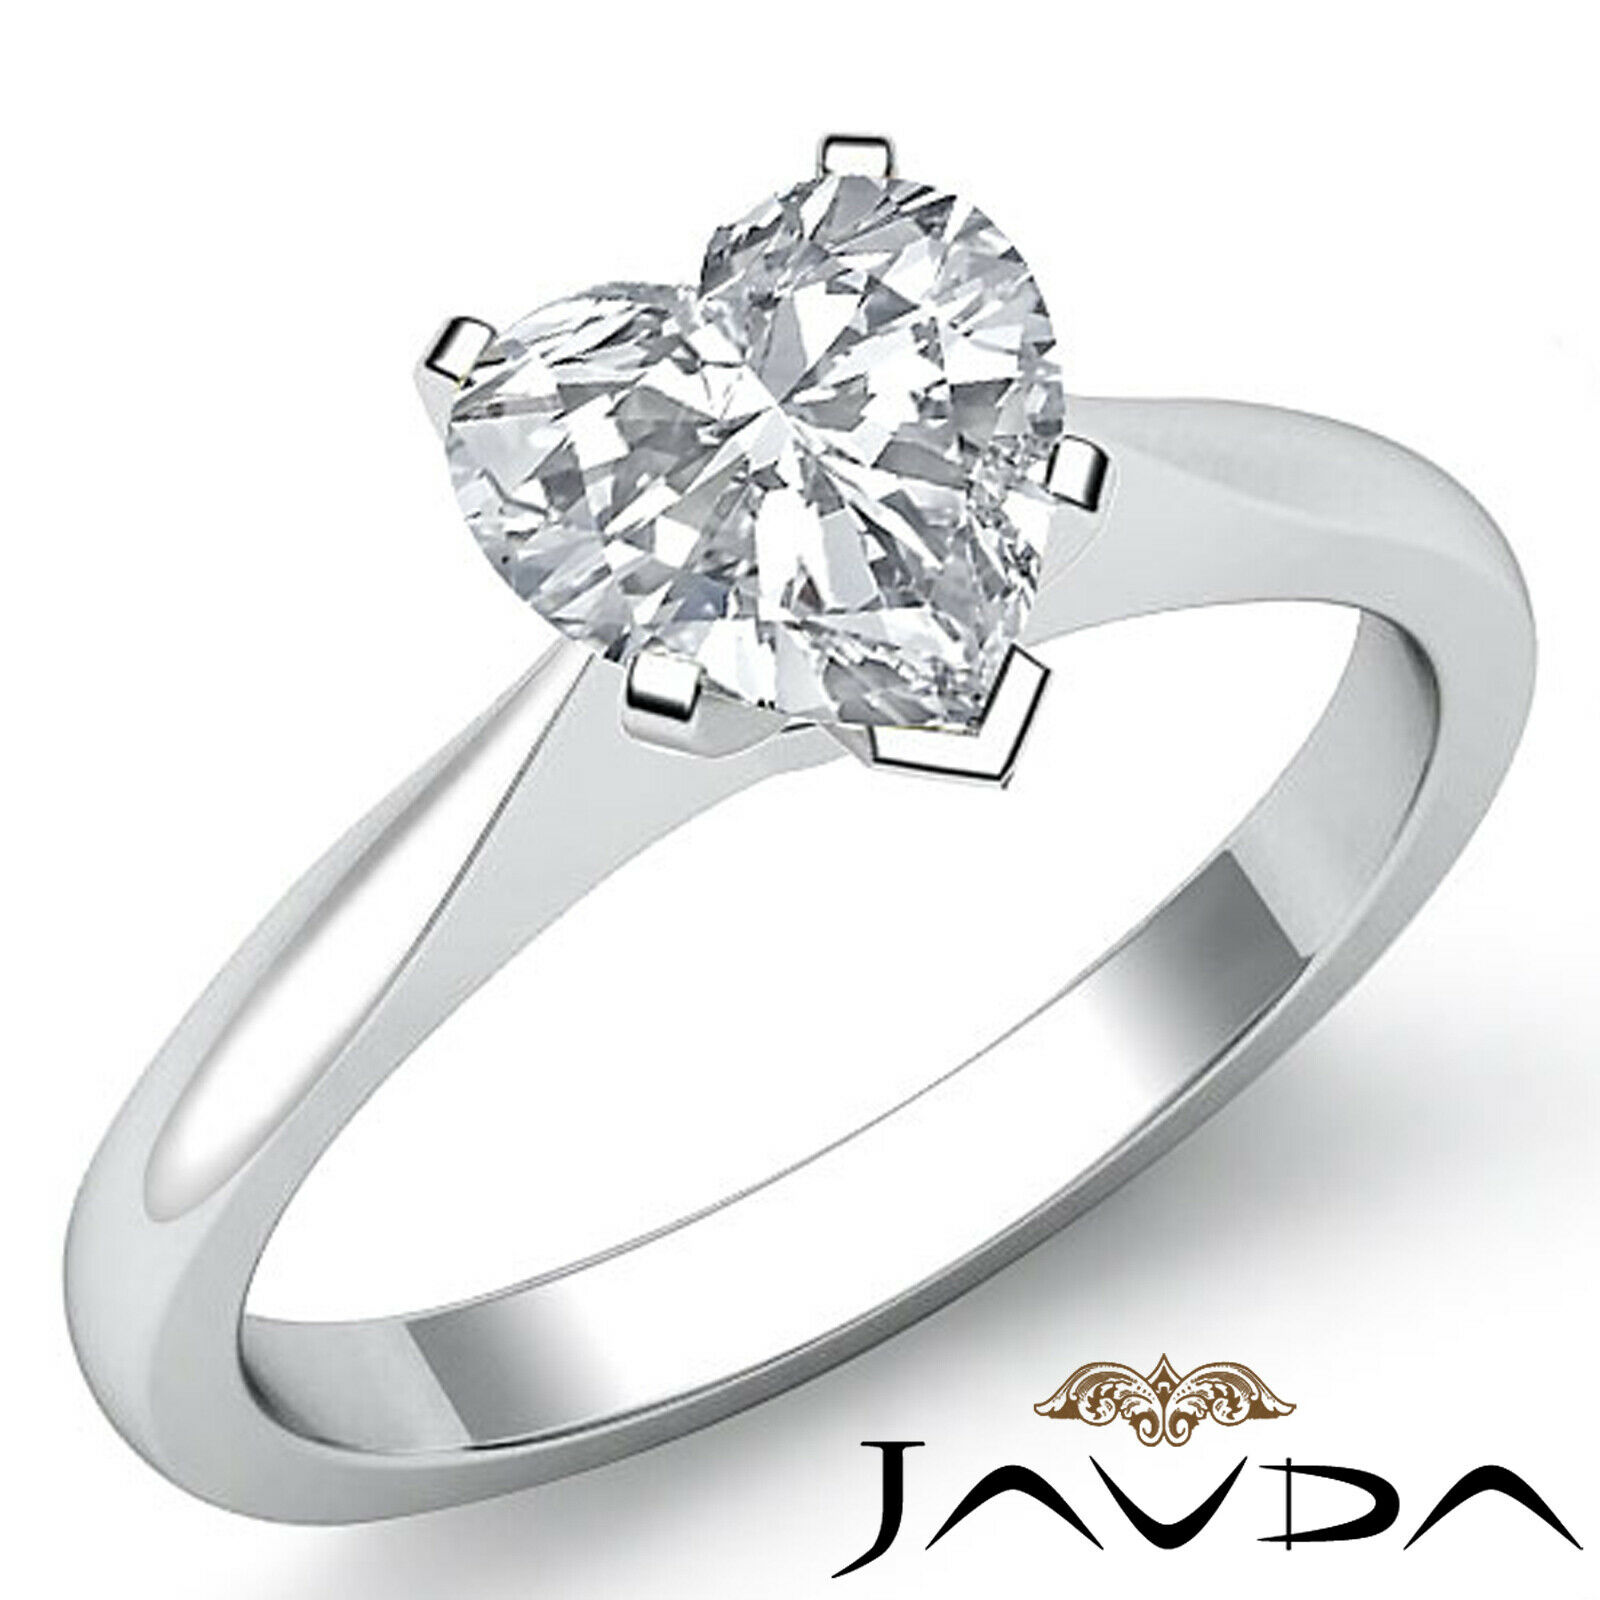 Heart Diamond Engagement 2mm Gold Ring GIA G VVS2 Tapper Solitaire 1.20 ct.